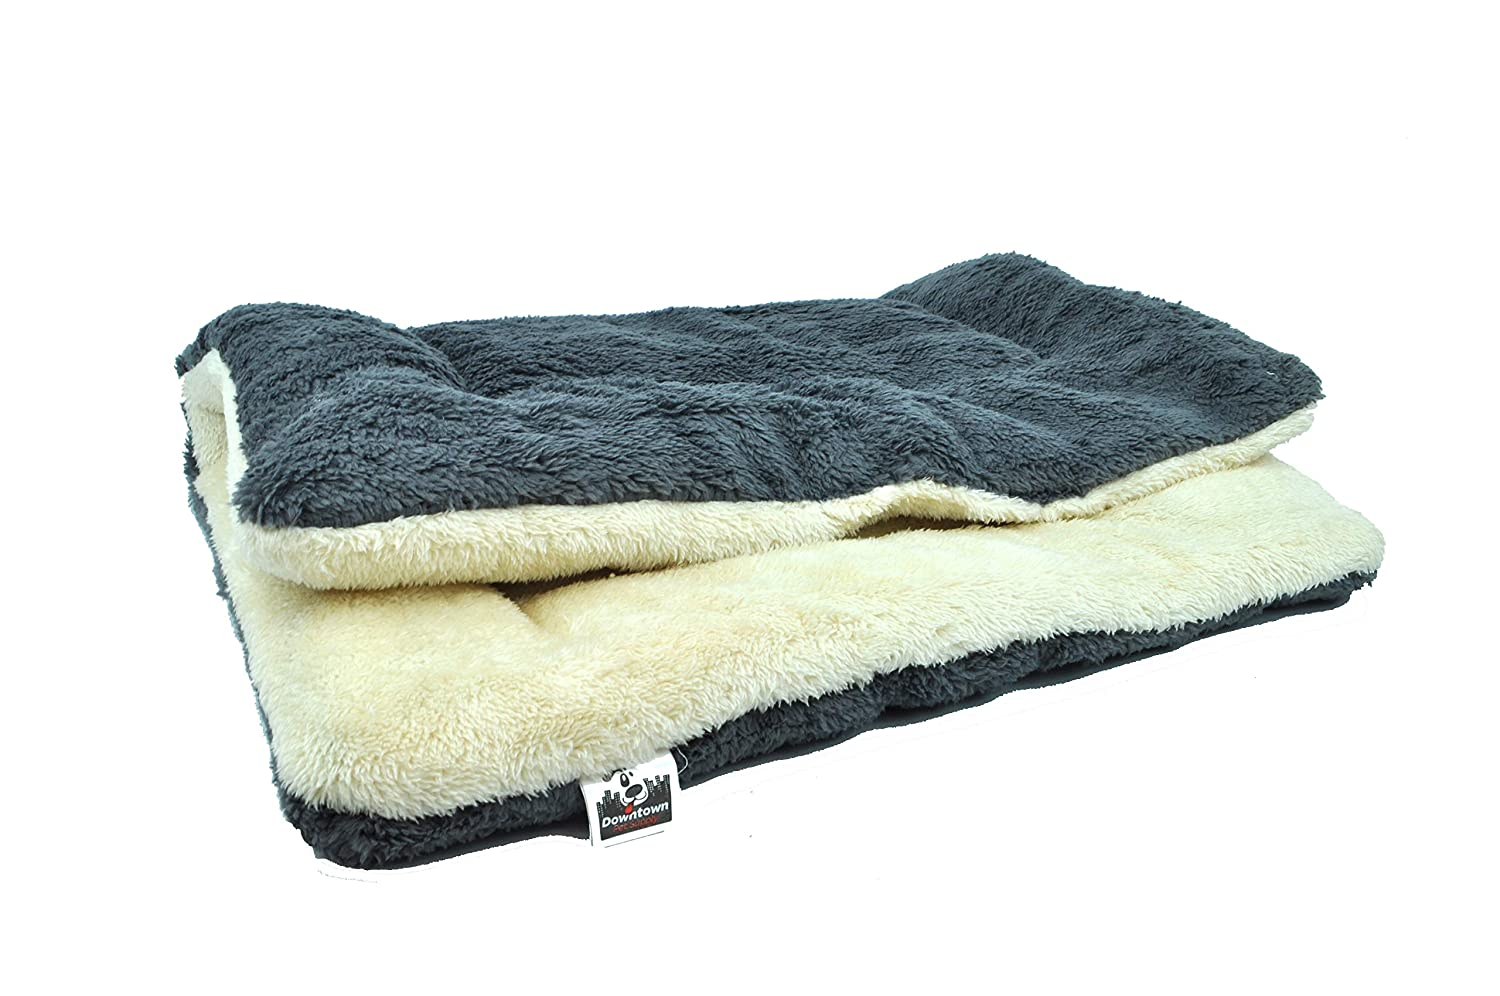 Oatmeal Charcoal X-Small Oatmeal Charcoal X-Small Comfort Pet Dog Crate Mat and Nap Pad   Great for Pet Houses, Kennels, Cages, Crates (X-Small, Oatmeal-Charcoal)